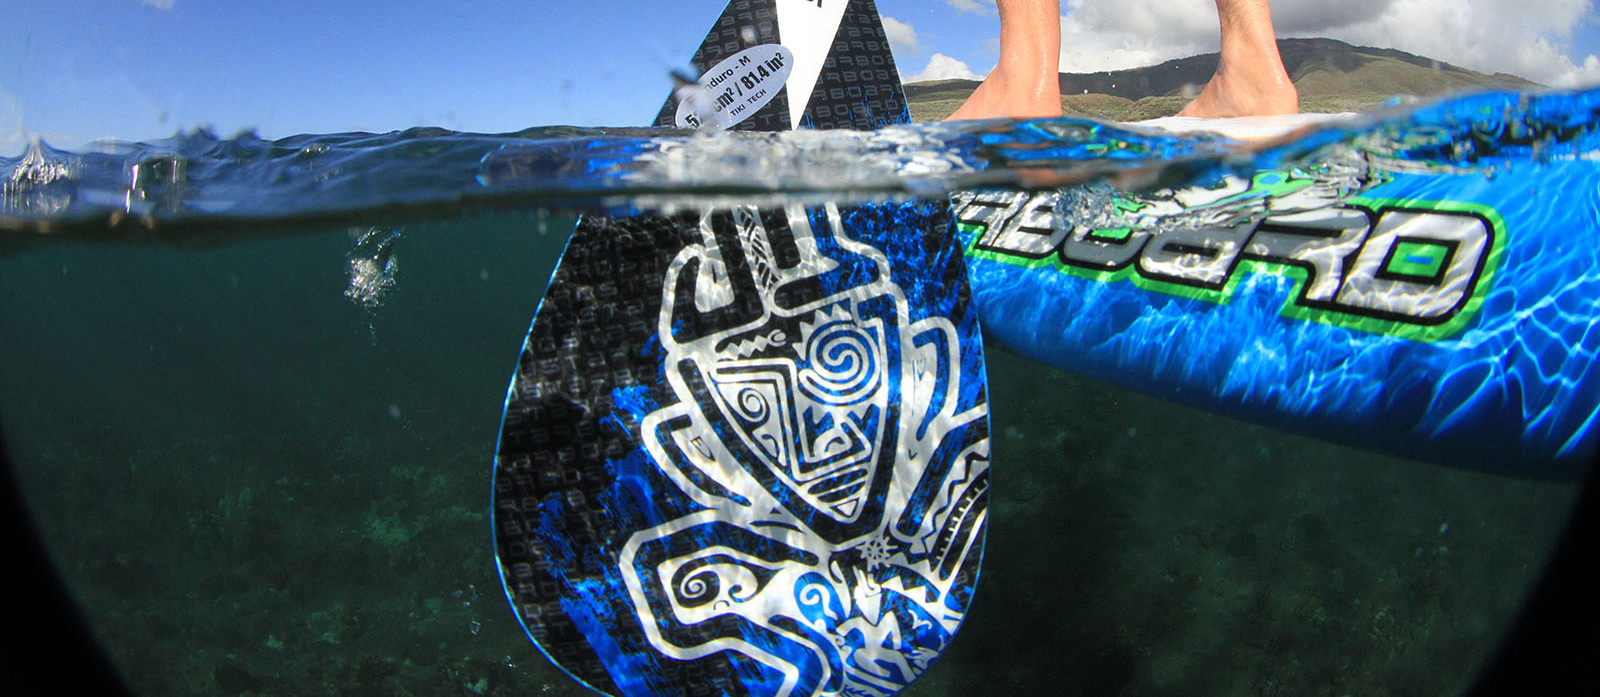 Surf SUP Paddle